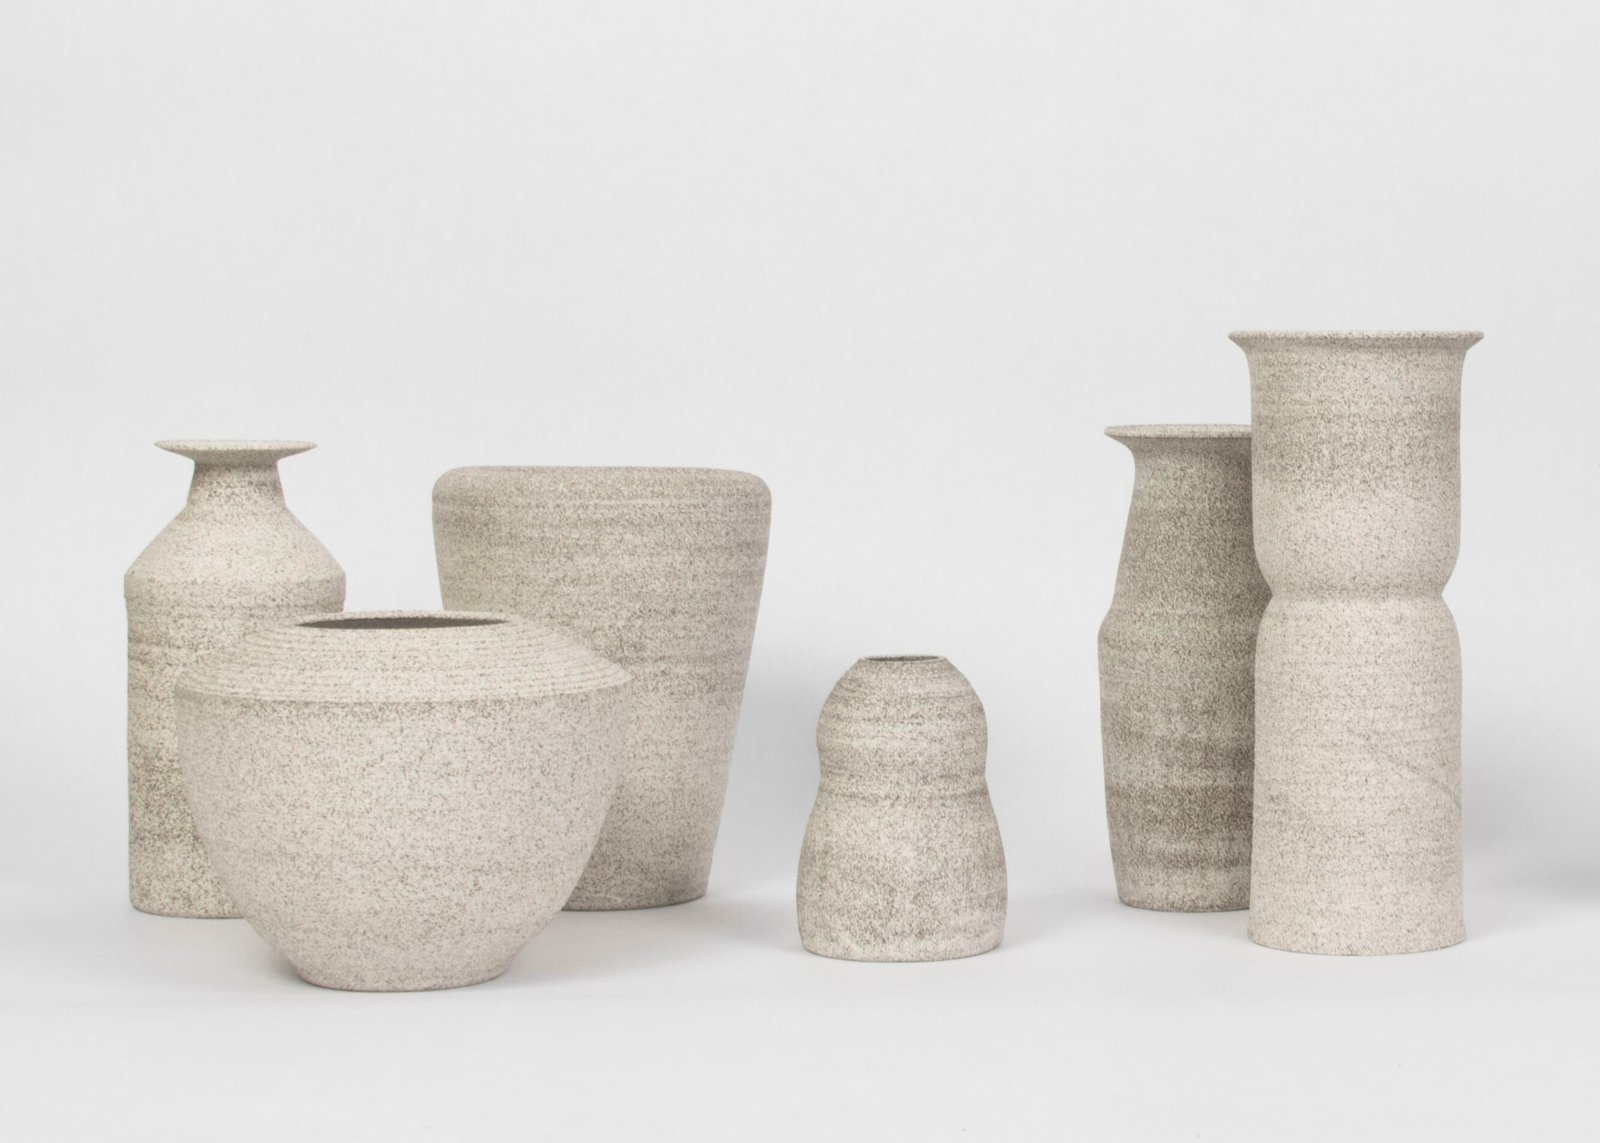 Natalie Weinberger's ceramics collection for Still House, made from recycled materials.  Hand-thrown and Glazed